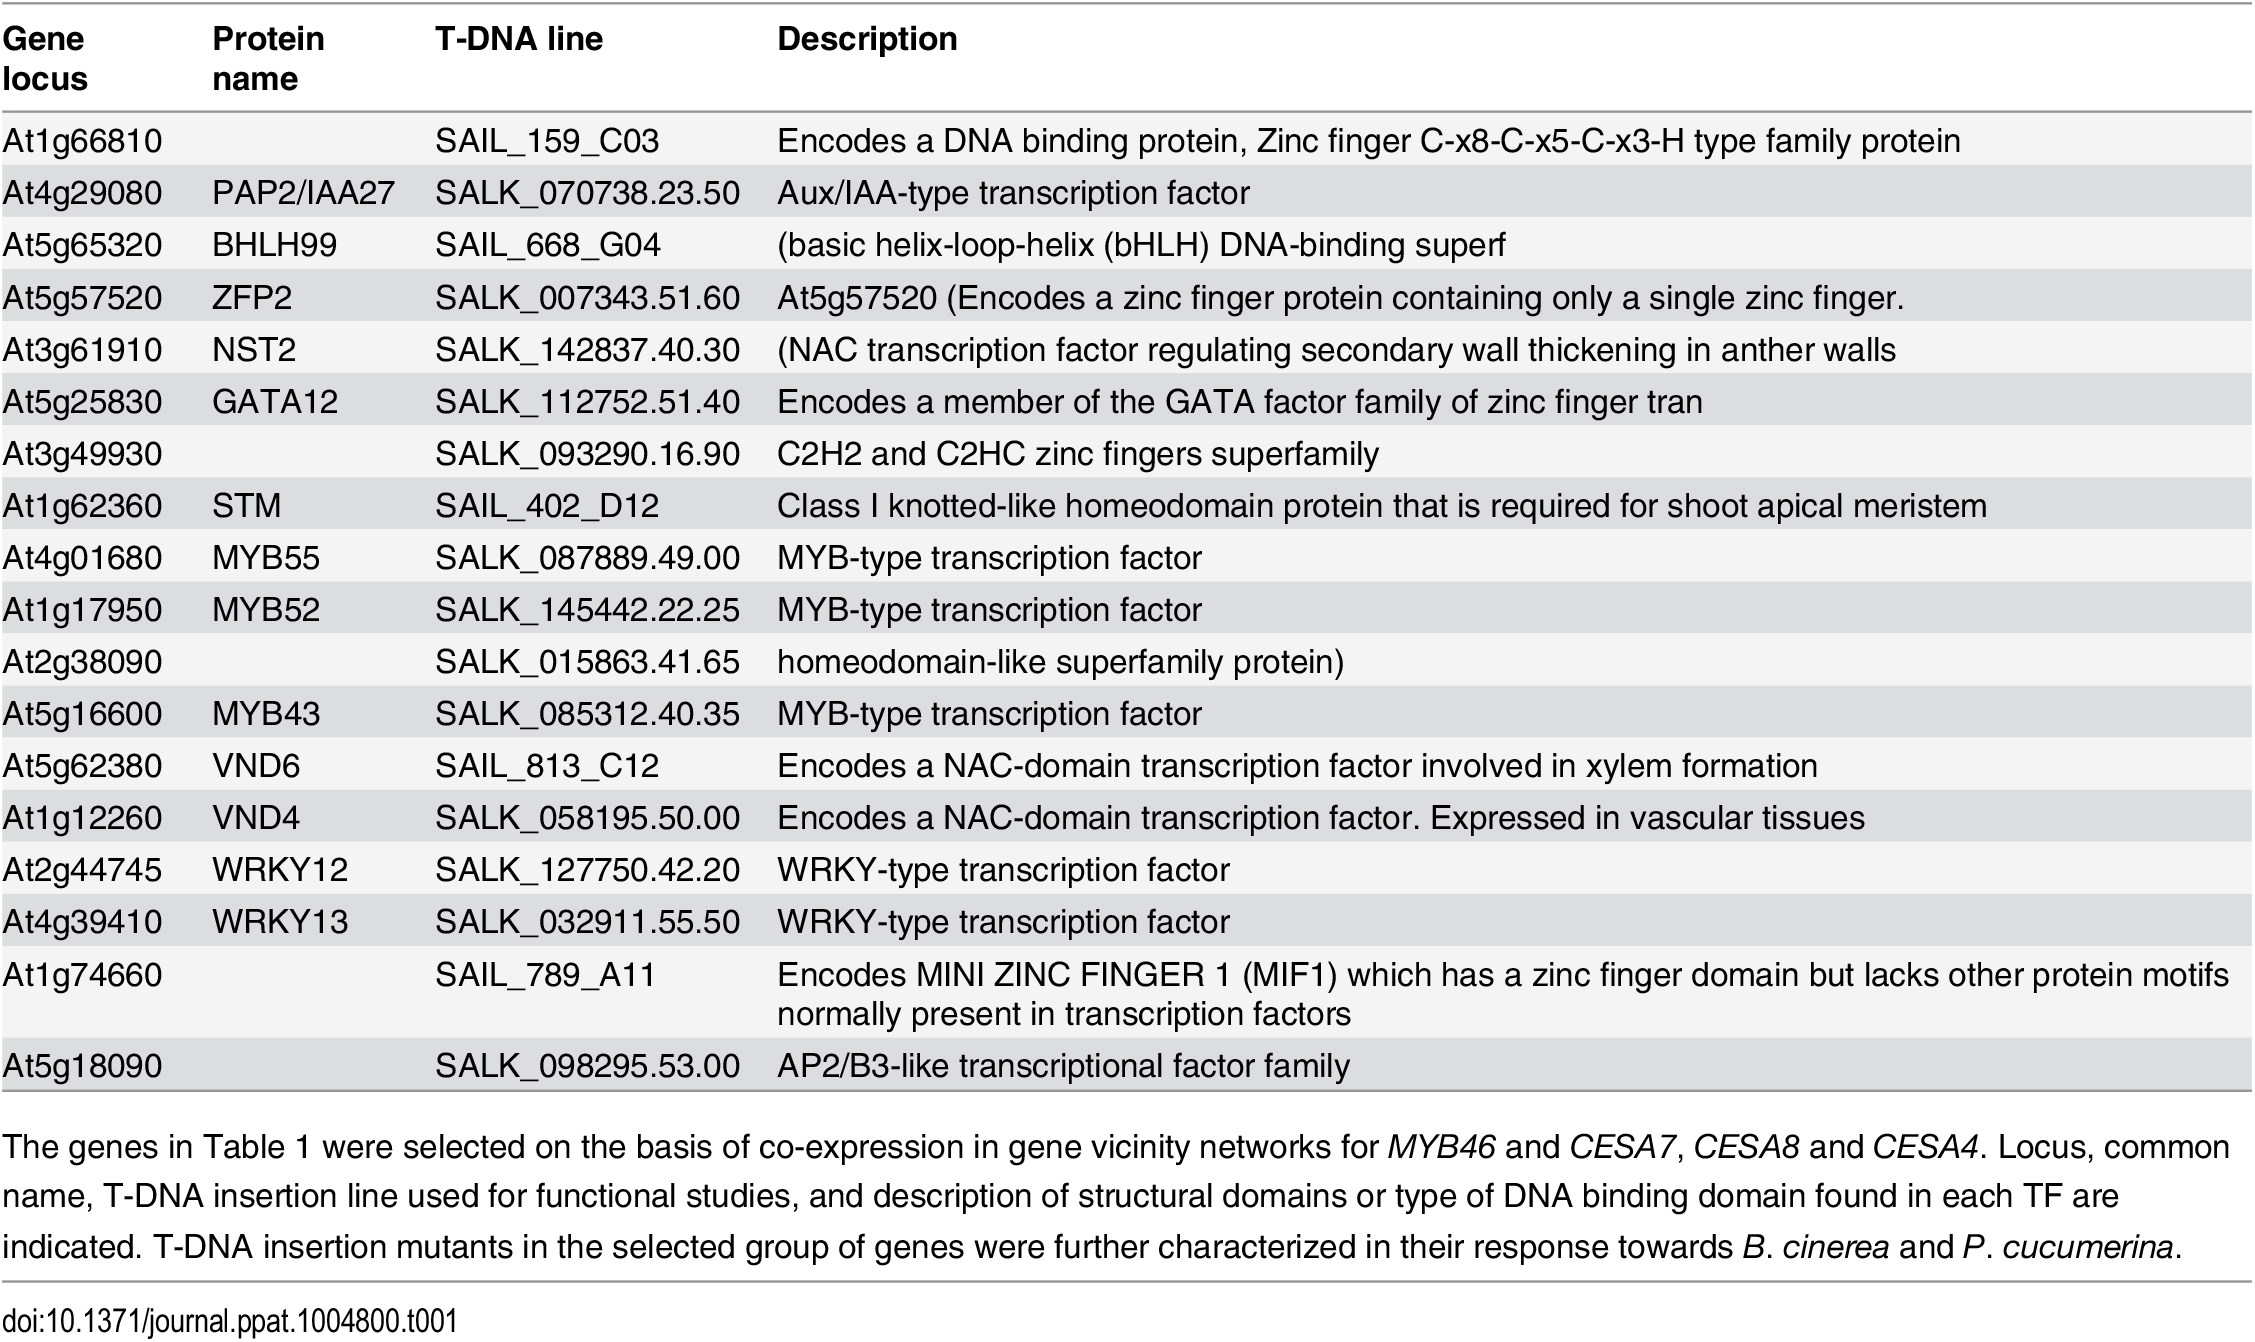 List of genes encoding the selected TFs.